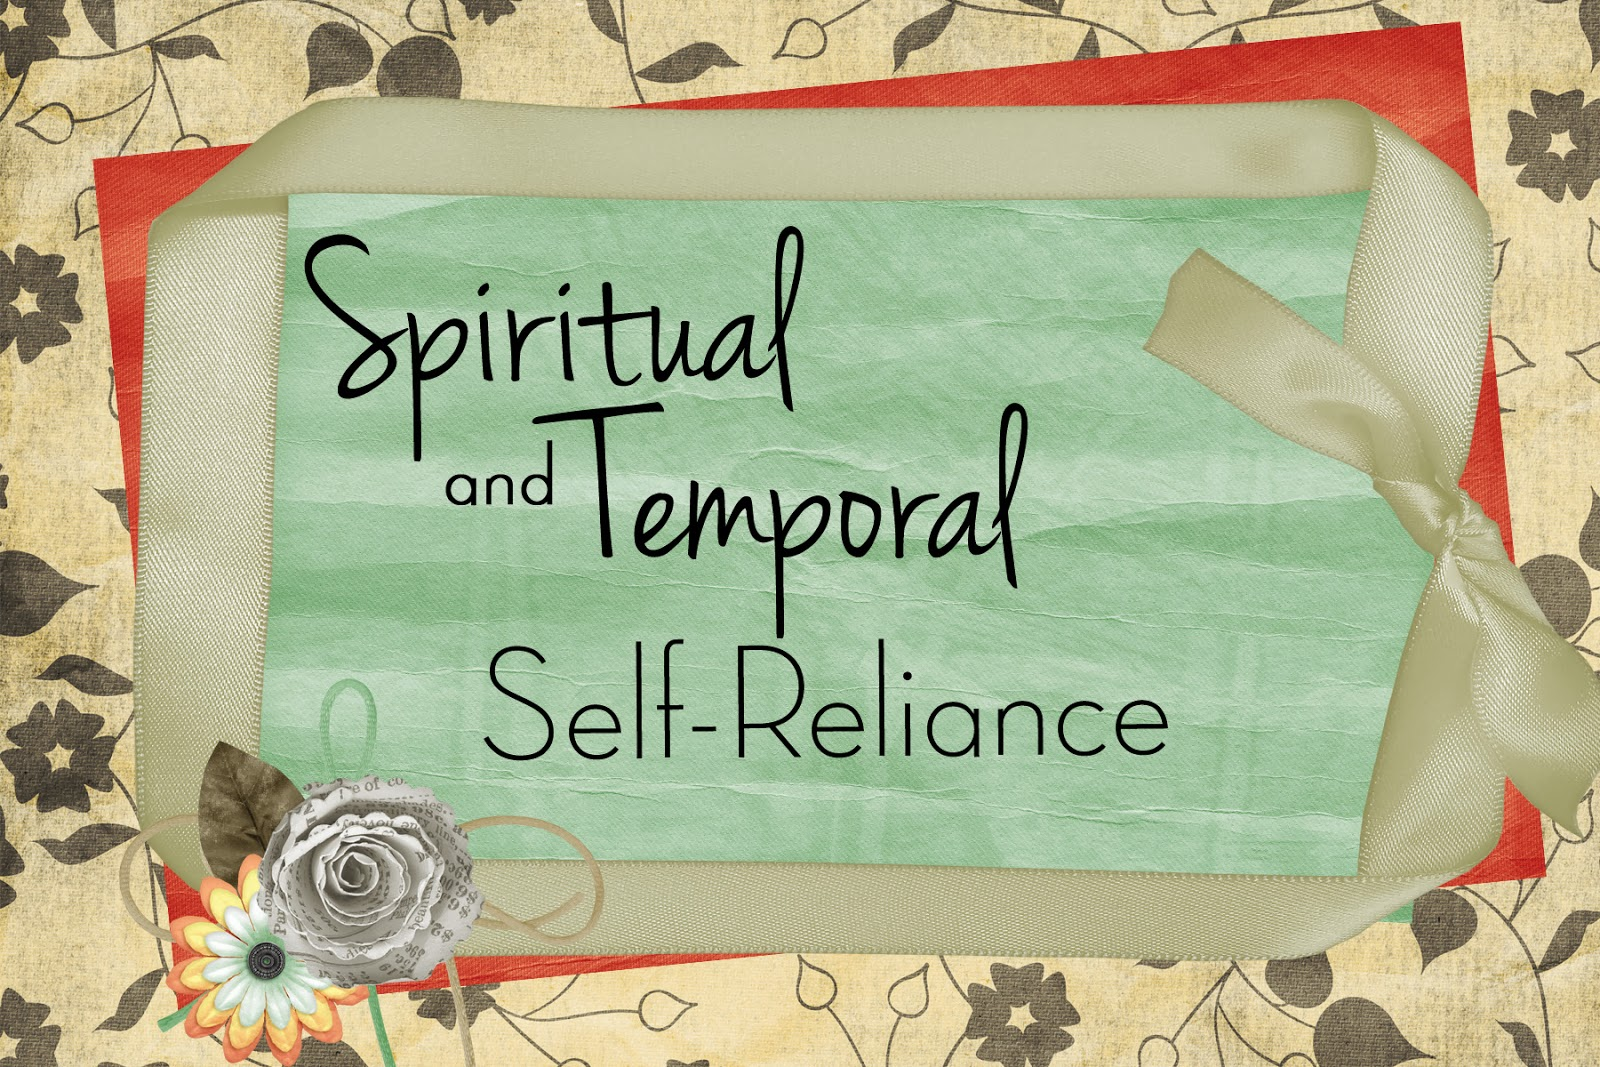 what is self reliance Self-reliance was first published in 1841 in his collection, essays: first series however, scholars argue the underlying philosophy of his essay emerged emerson opens his essay with the assertion, to believe in your own thought, to believe that what is true for you in your private heart is true for all.